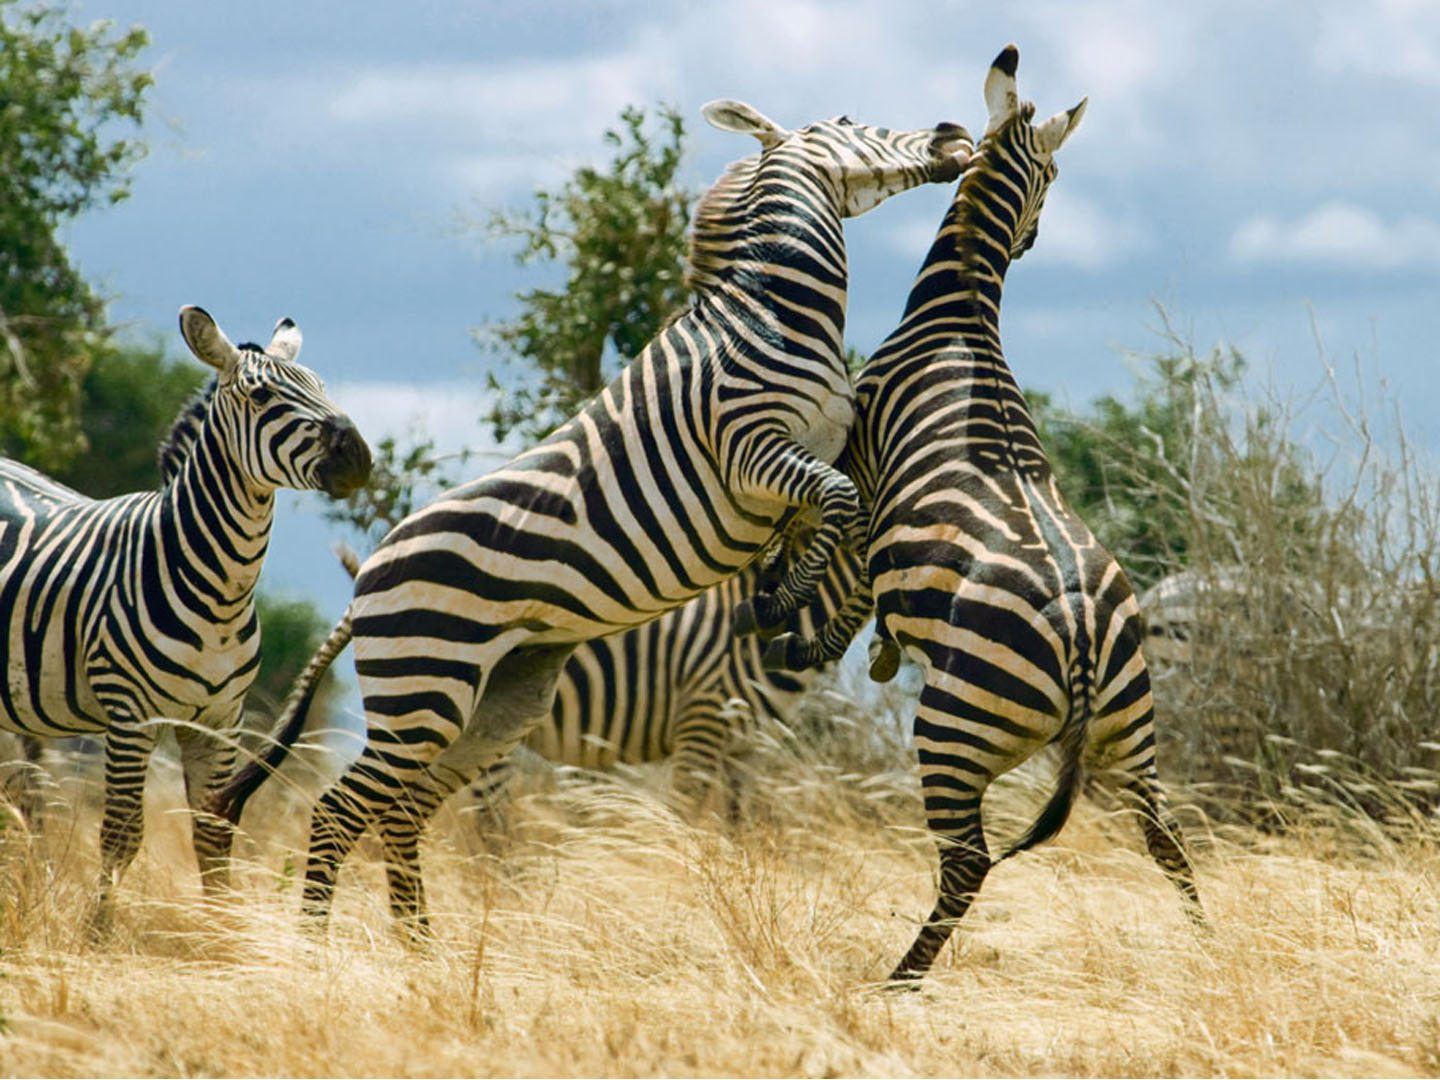 Zebras are social animals that live in herds. They can often be seen grazing together, playing, and even grooming each other on the plains of Tsavo. Photo: Image Broker/ Indiapicture